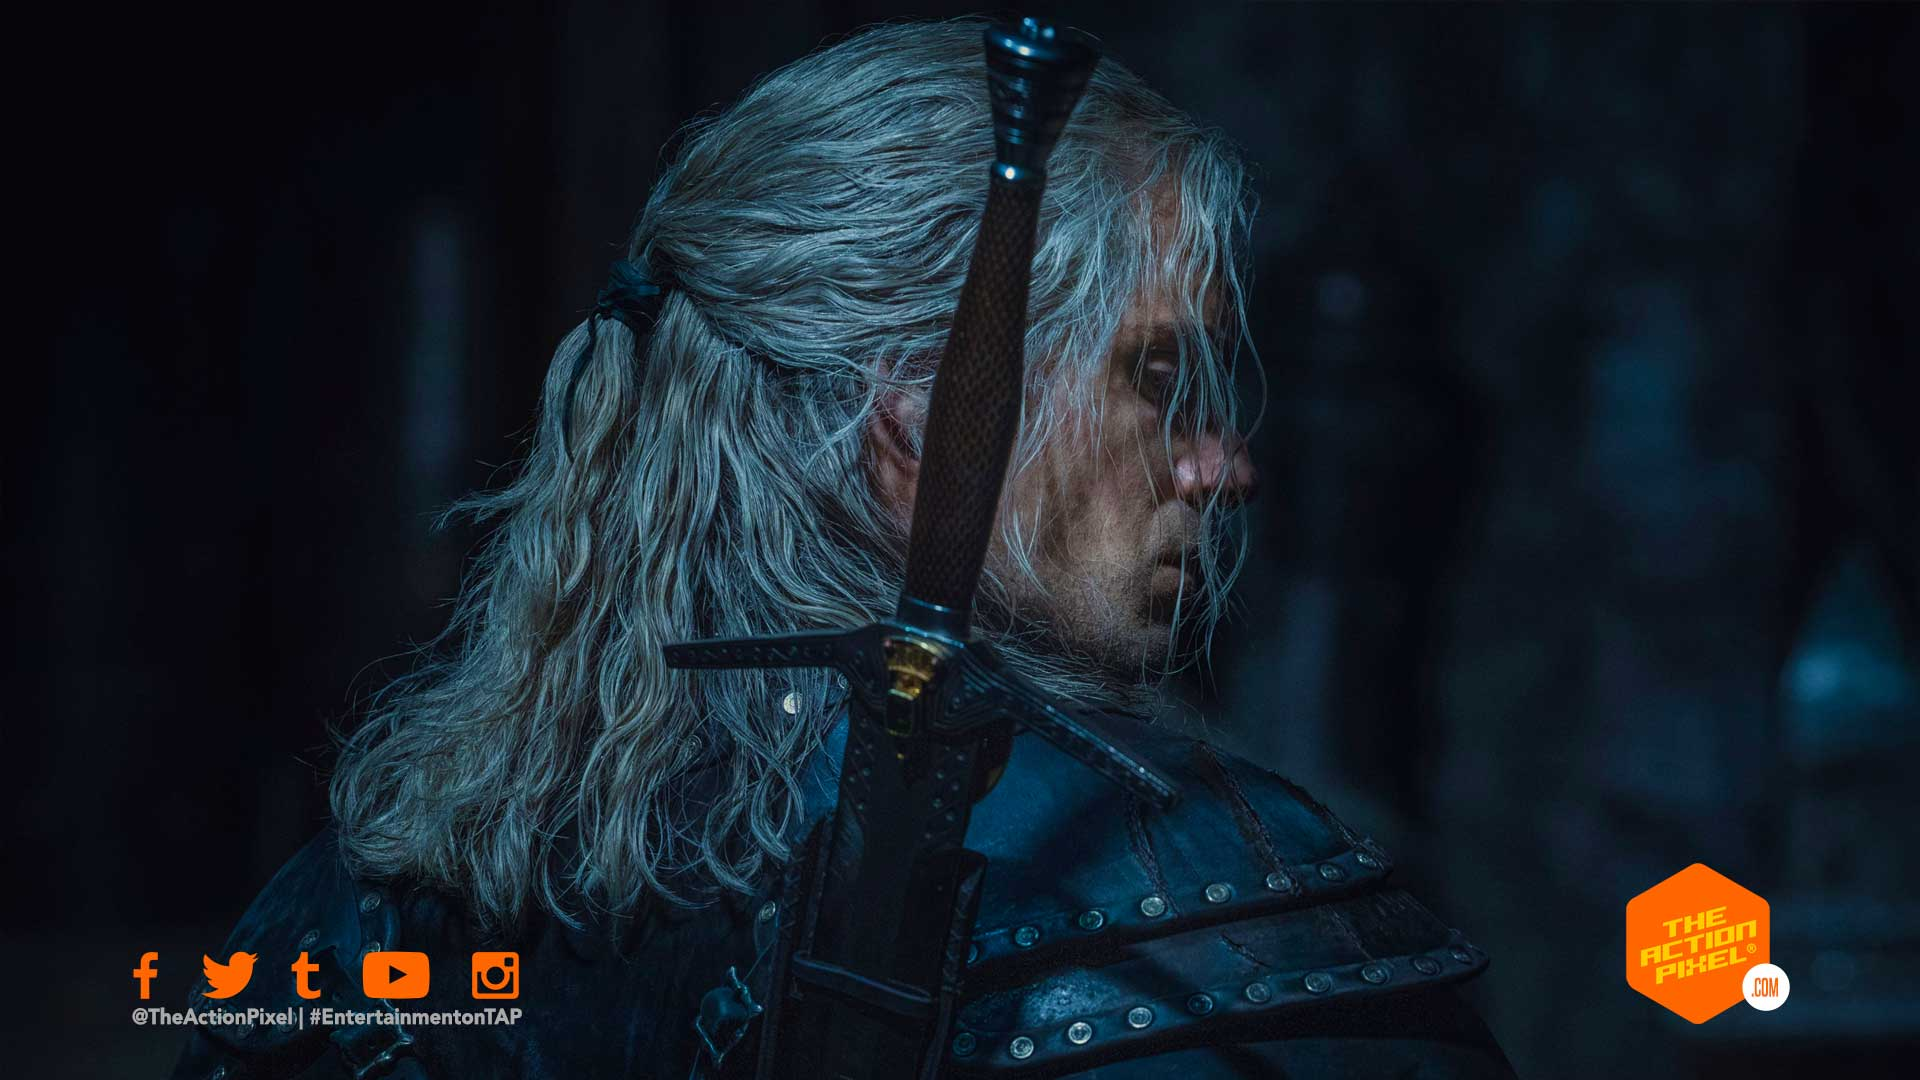 the witcher casting, the witcher season 2, the witcher, entertainment on tap, featured, netflix,